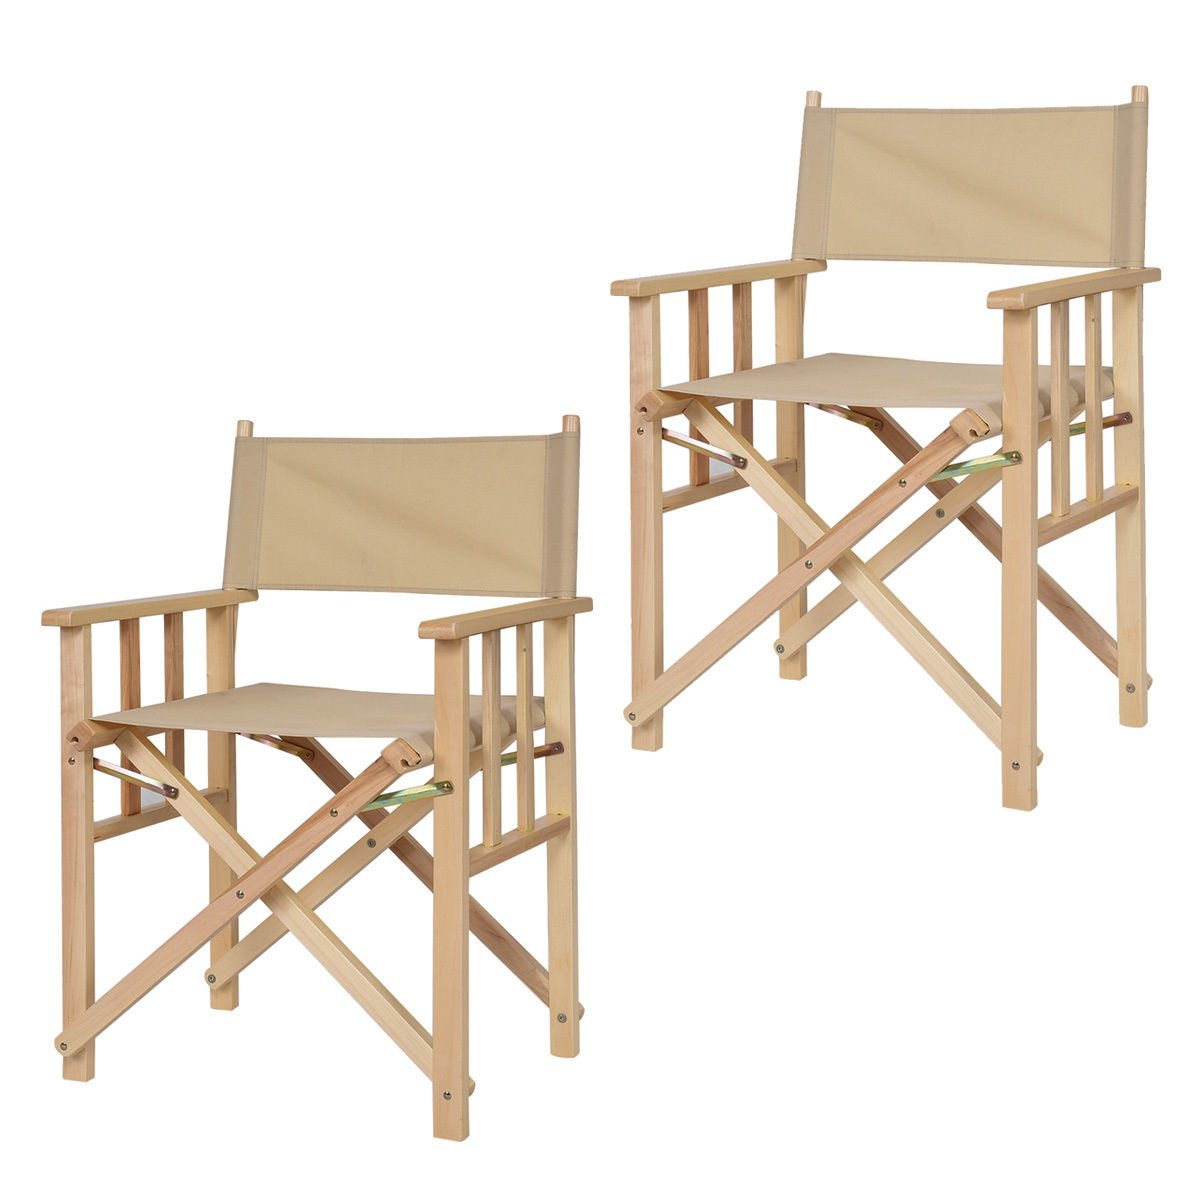 New MTN-G 34'' Set Of 2 Folding Makeup Director Chairs Wood Camping Fishing Beige by MTN Gearsmith